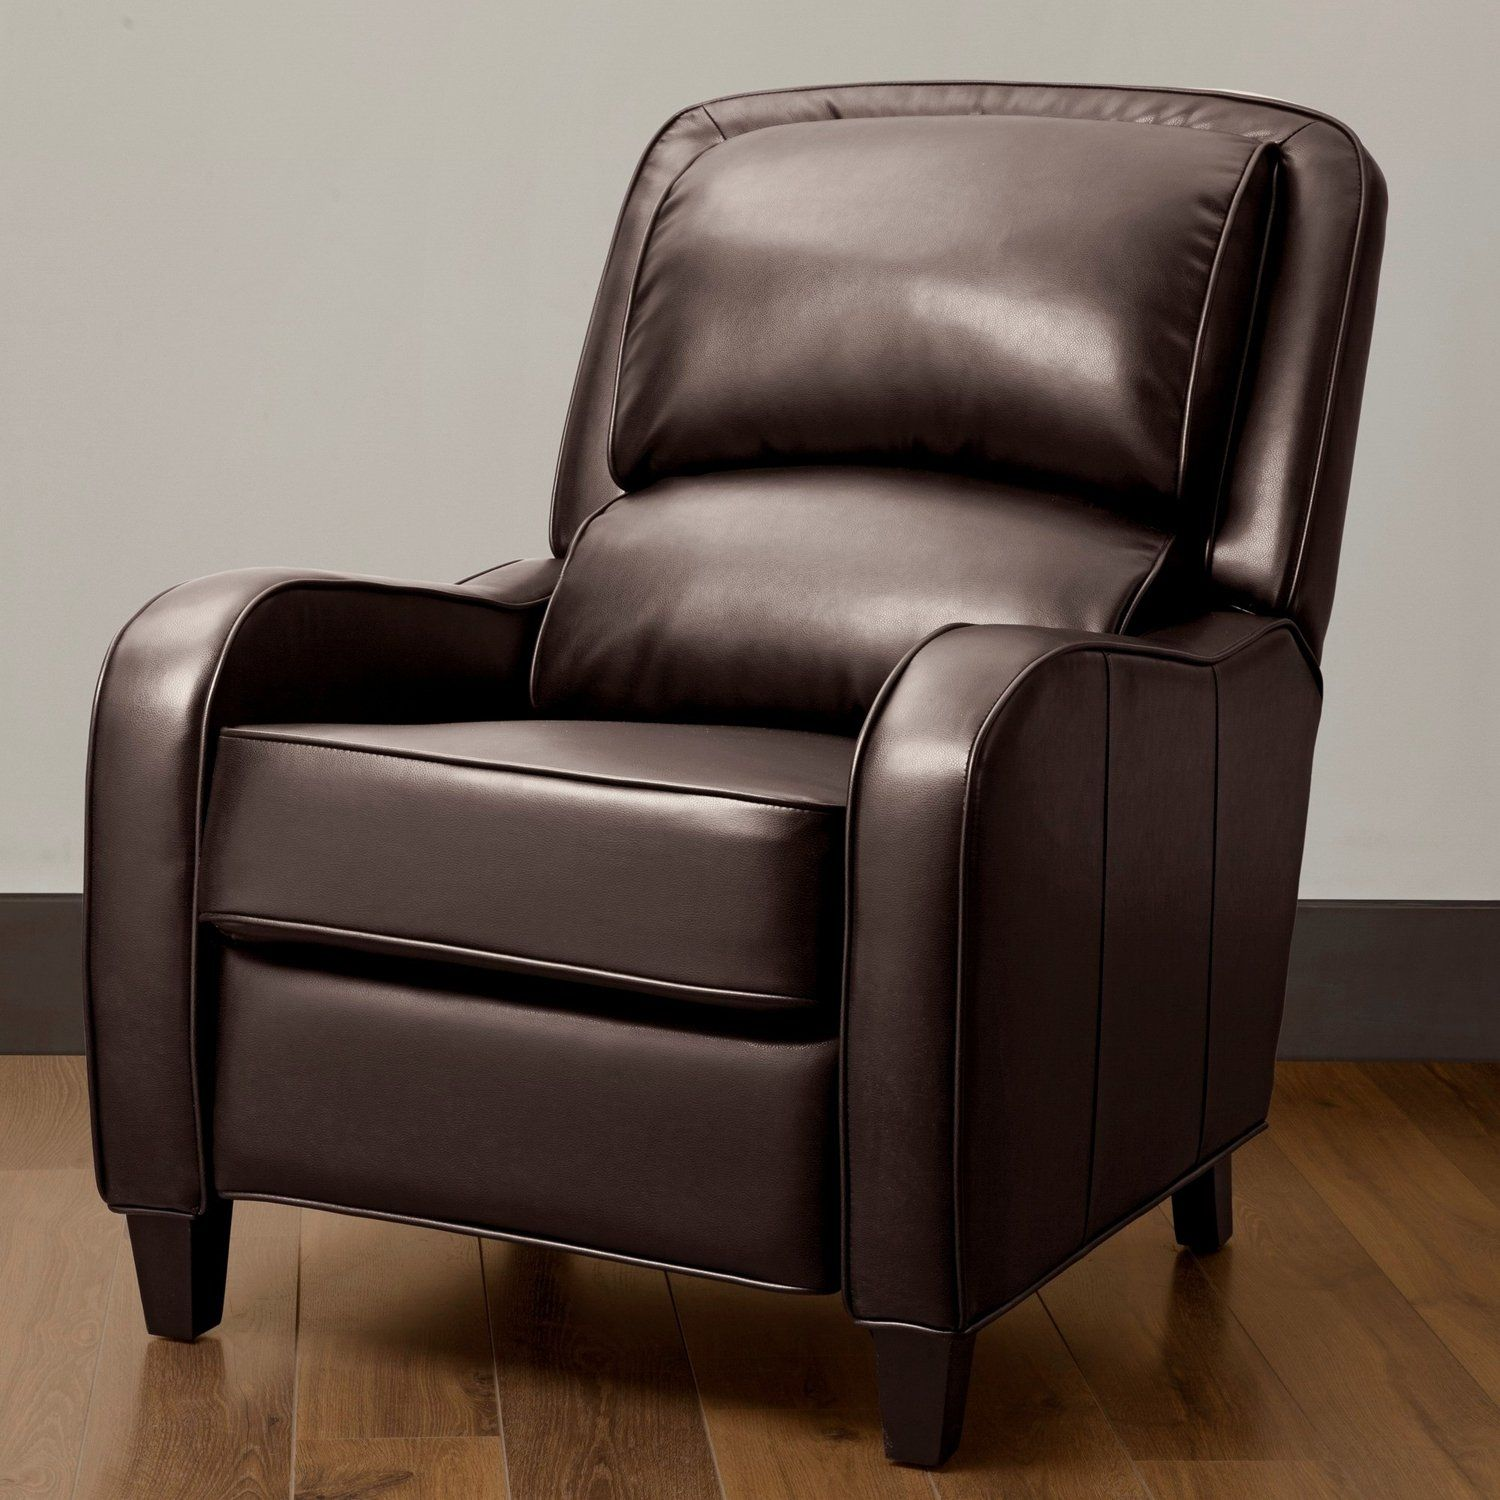 How To Choose The Best Modern Small Leather Recliners Furniture Recliner Chairs For Small Spaces